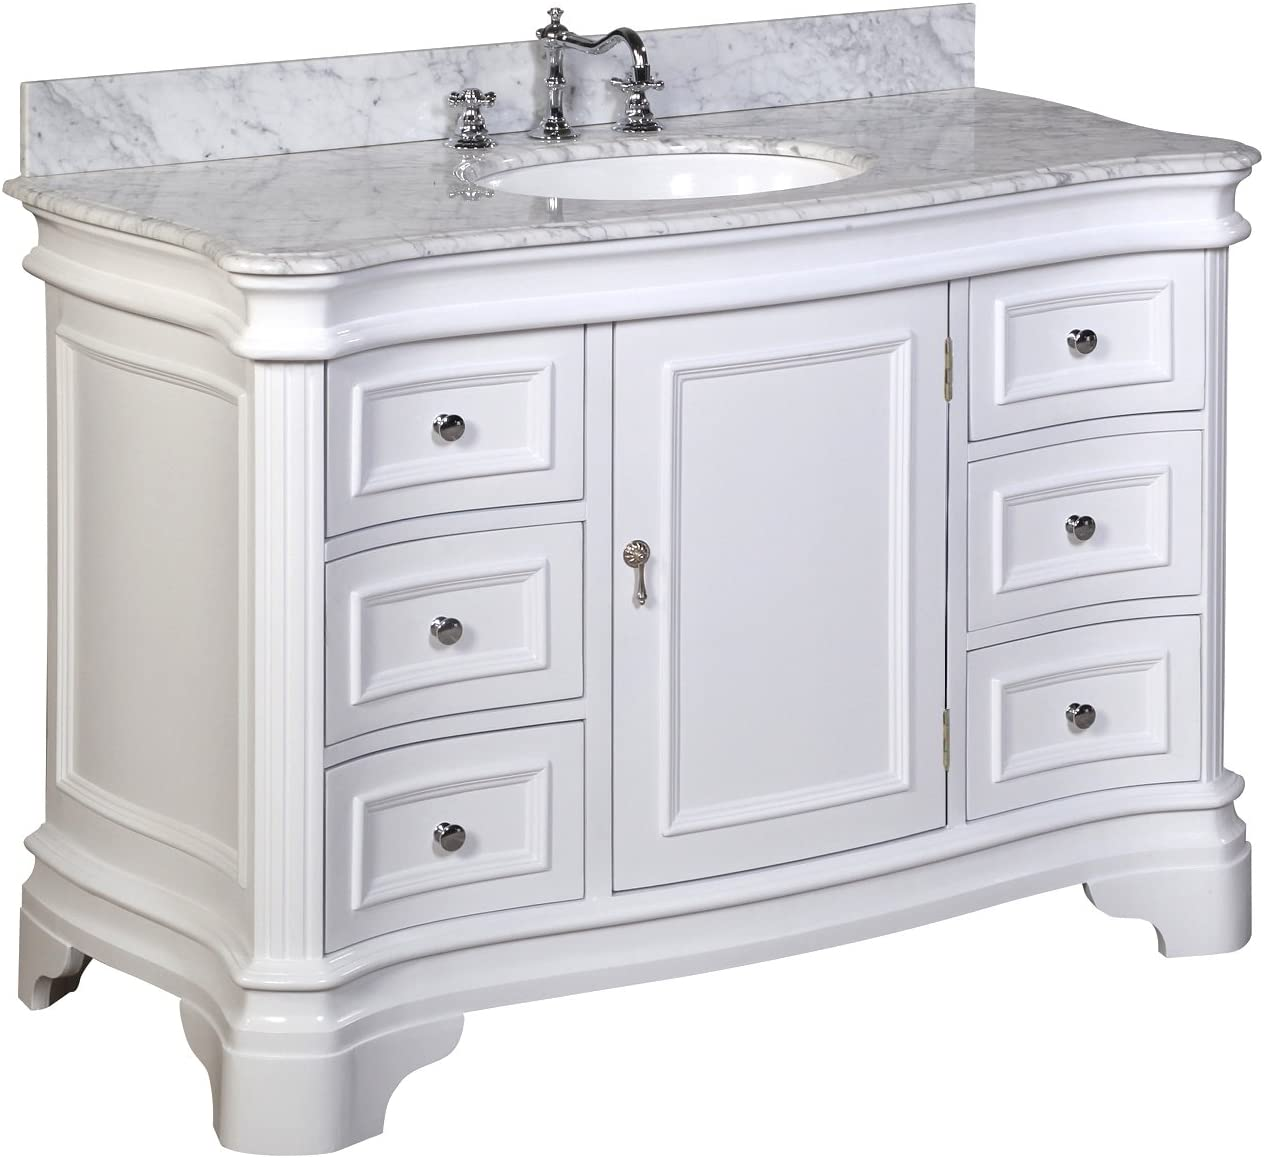 Katherine 48-inch Bathroom Vanity Carrara White Includes White Cabinet with Authentic Italian Carrara Marble Countertop and White Ceramic Sink